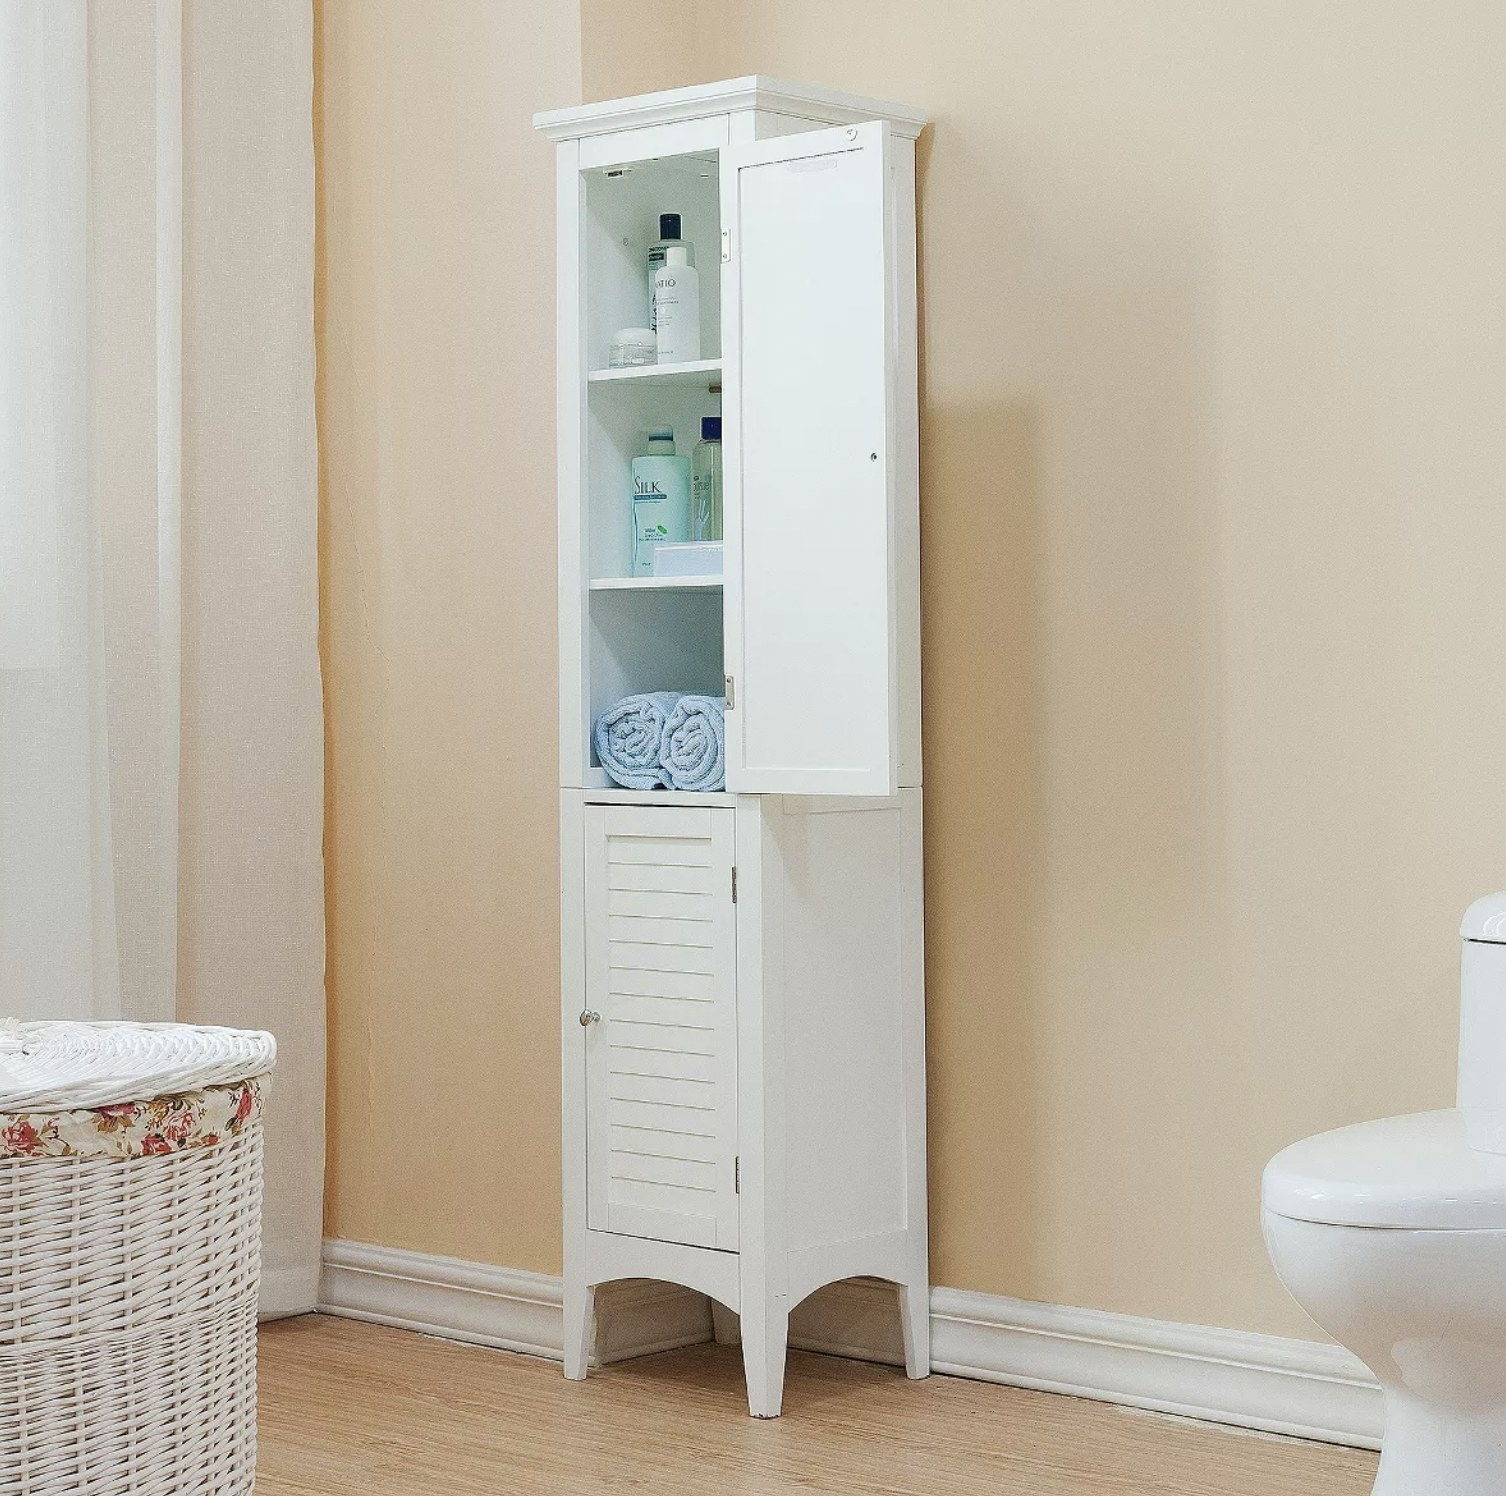 a white two-door shuttered linen cabinet with the top door open, revealing three shelves holding linens and toiletries